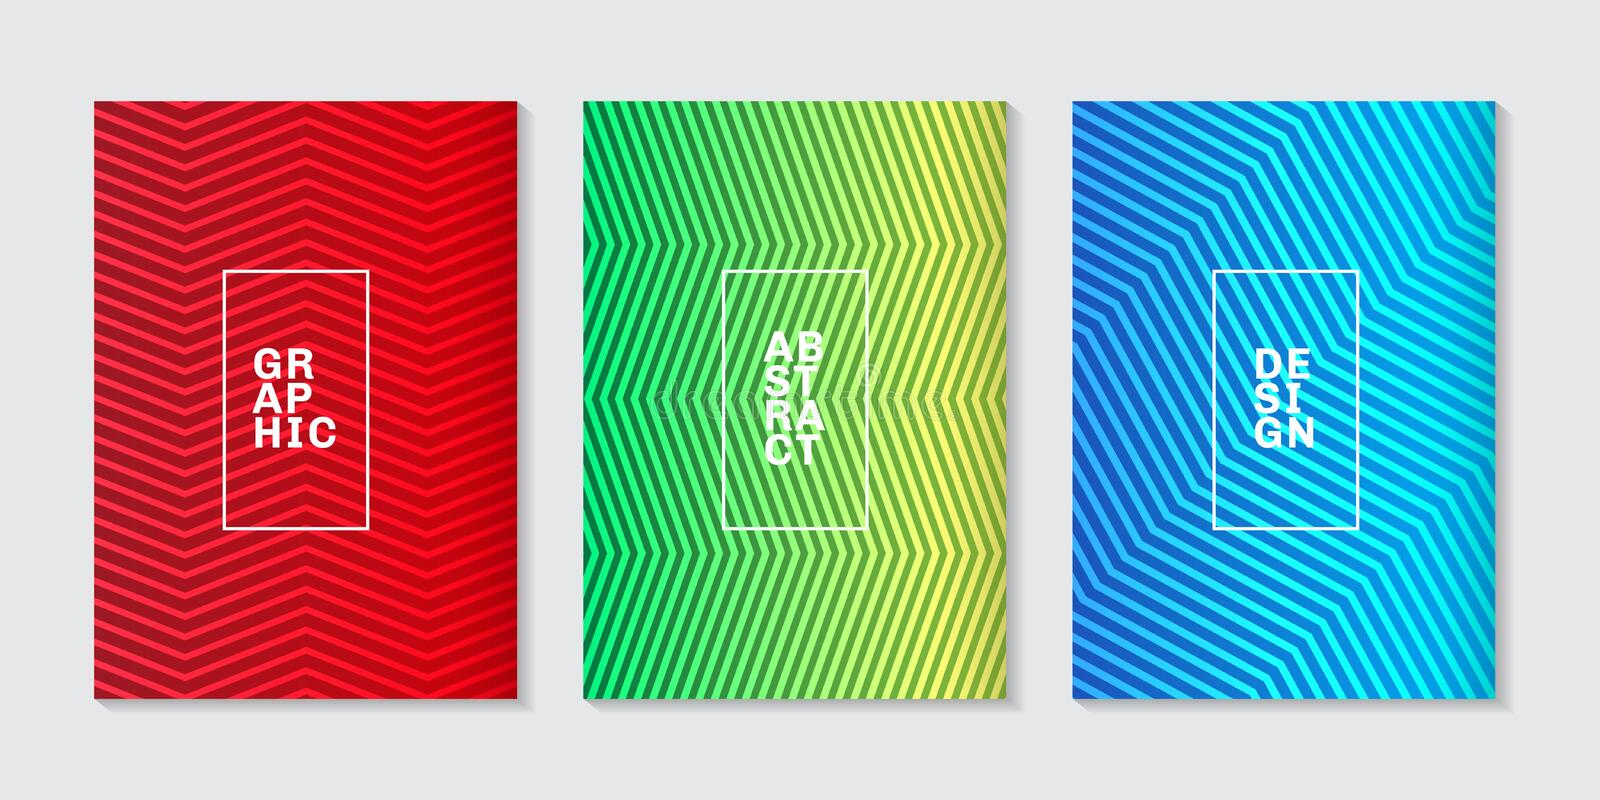 Set of background minimal covers design abstract cool halftone gradient line pattern. Future geometric template vector illustration